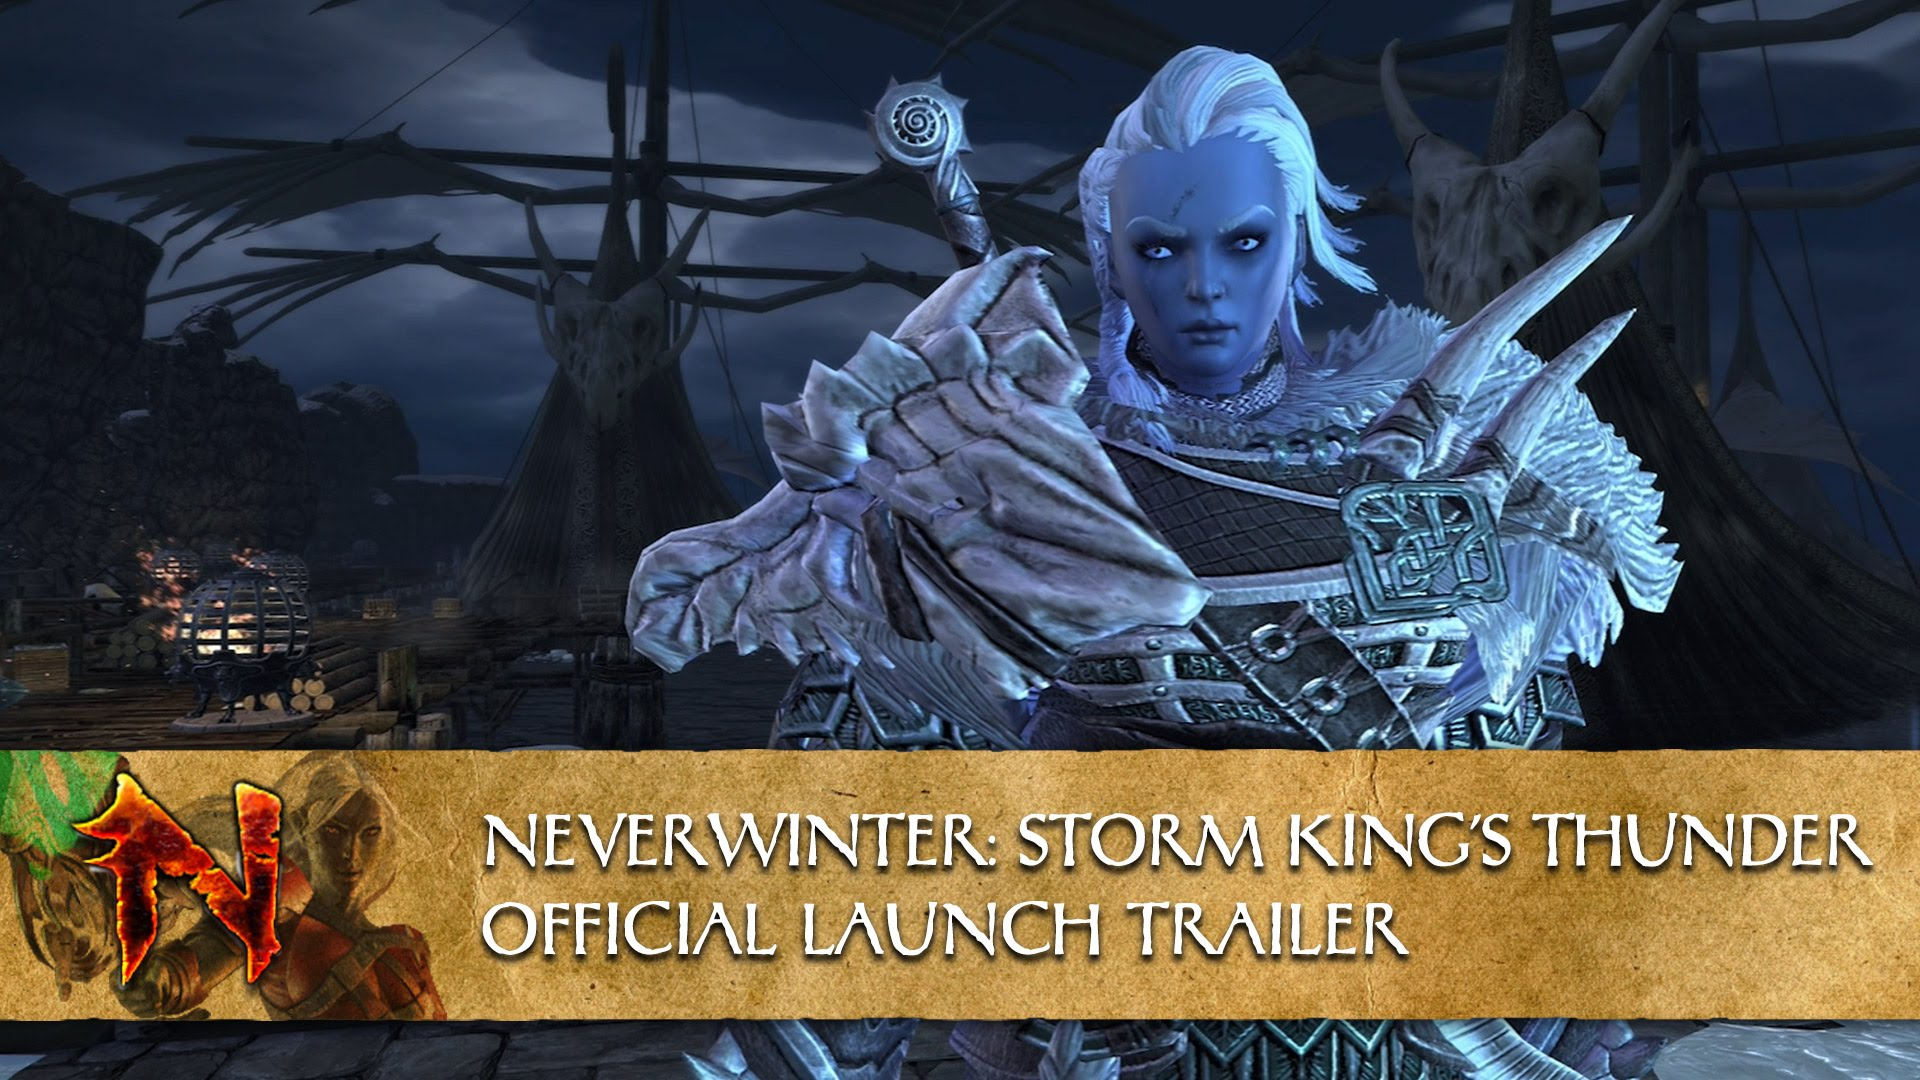 Neverwinter: Storm King's Thunder - Official Launch Trailer